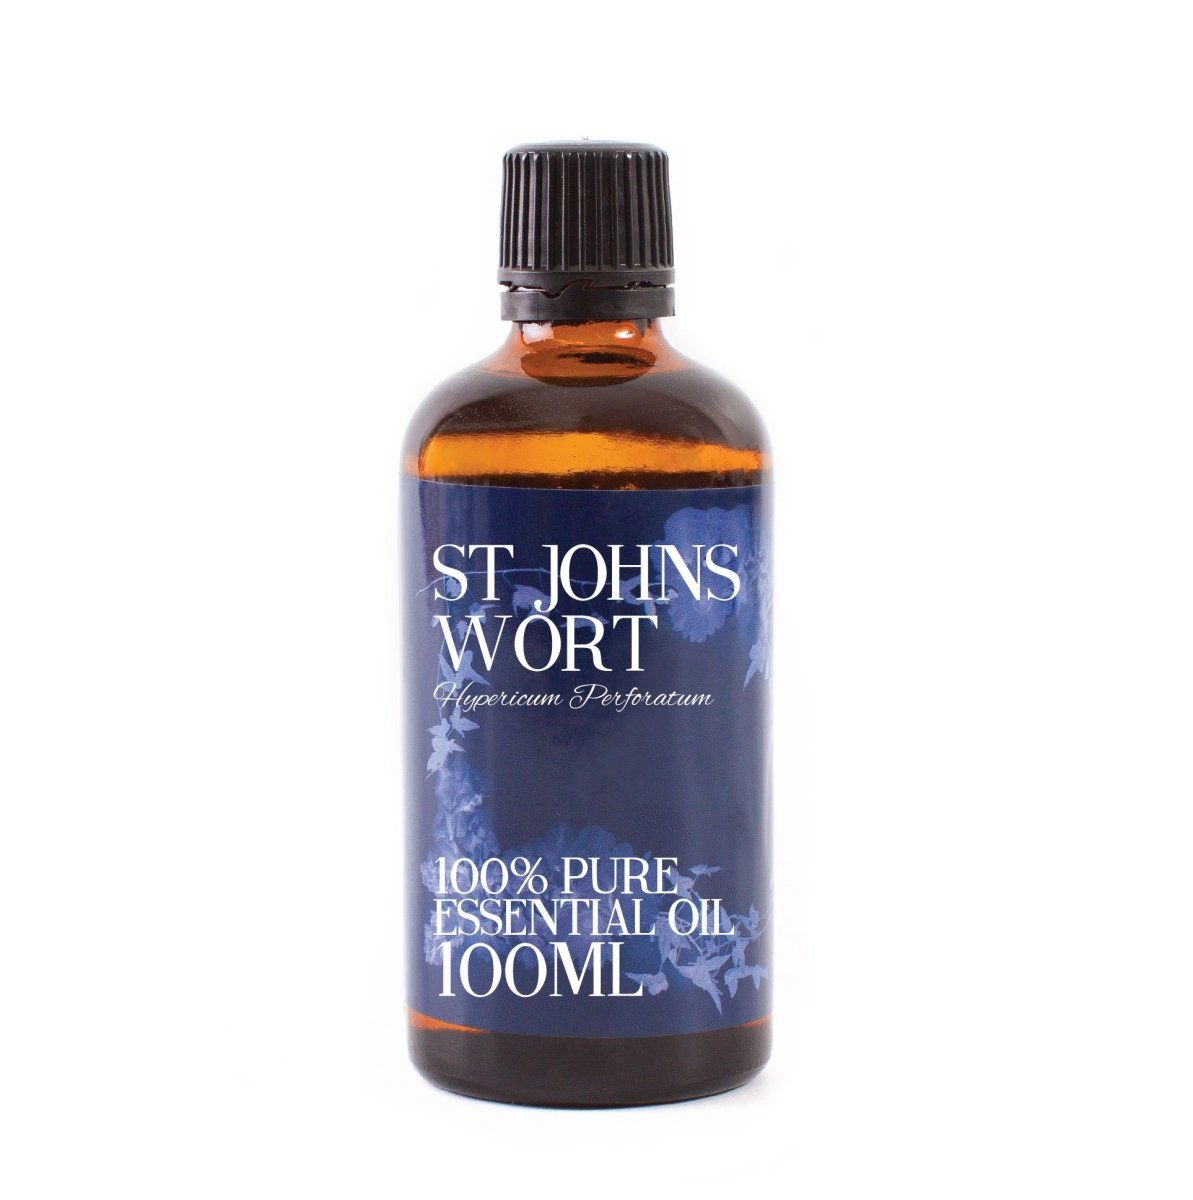 St Johns Wort Essential Oil - Mystic Moments UK